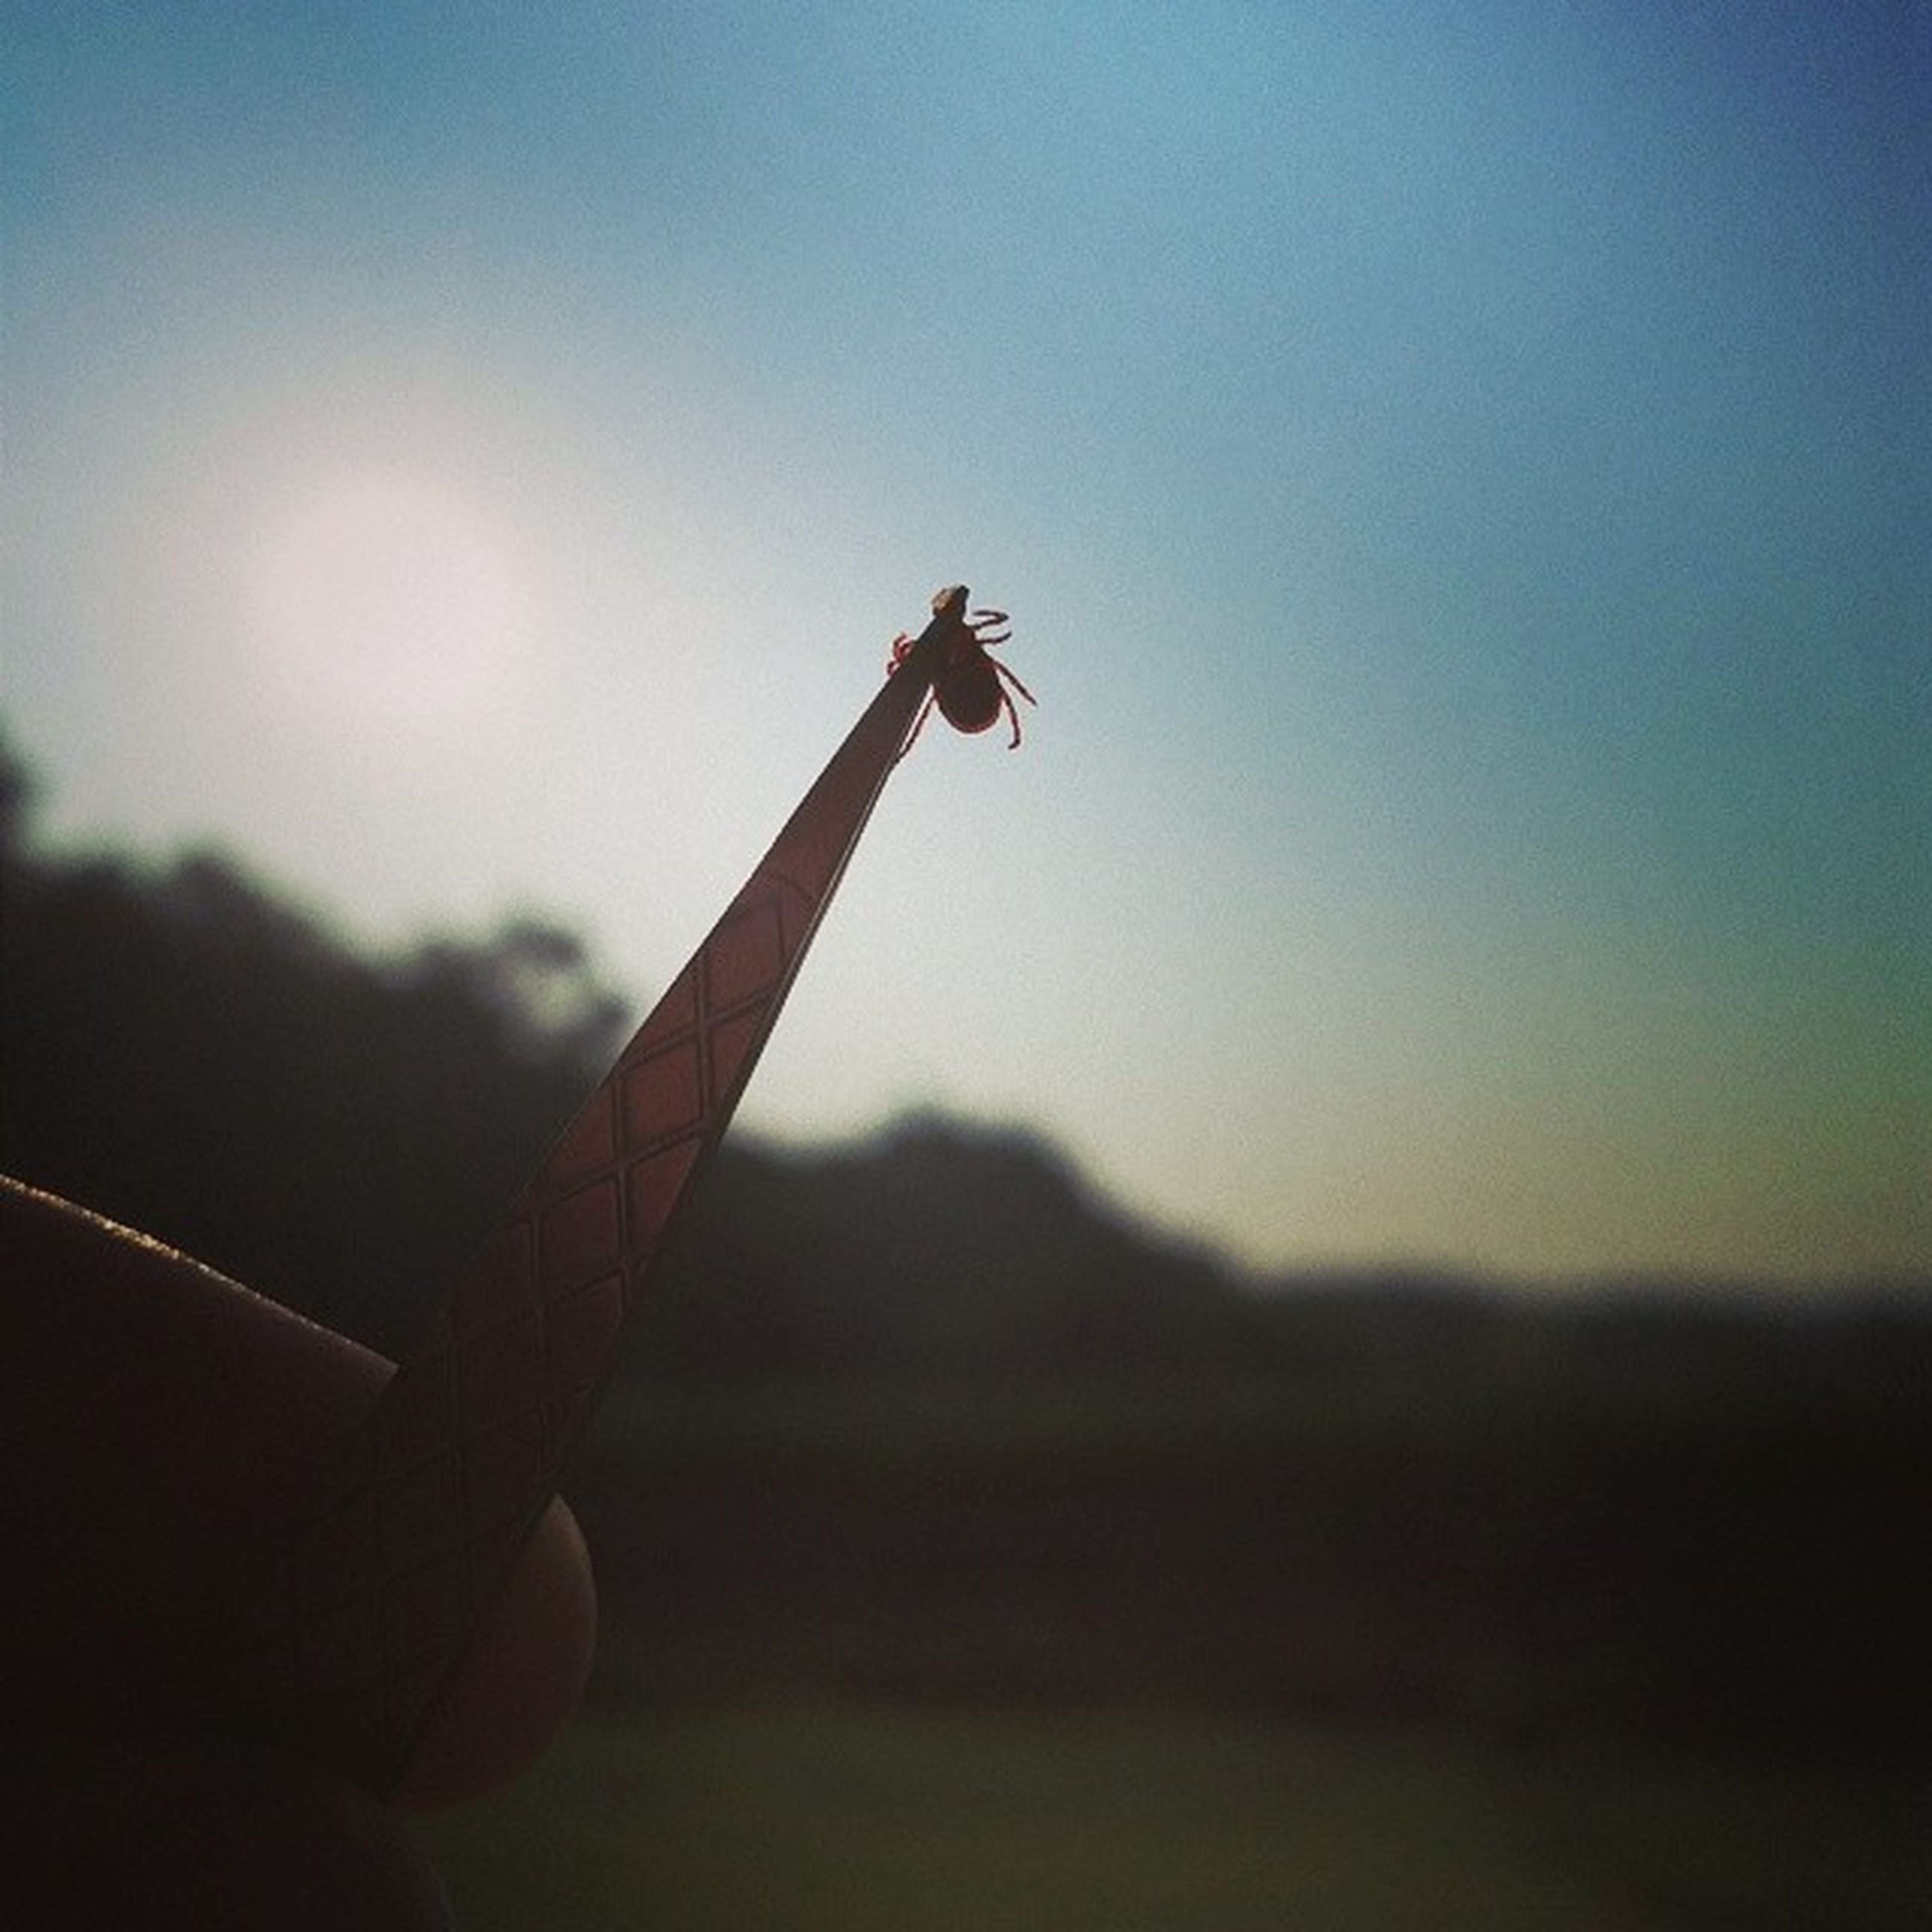 low angle view, silhouette, sky, focus on foreground, one person, part of, person, cropped, close-up, copy space, clear sky, holding, nature, dusk, outdoors, sunset, day, human finger, flying, selective focus